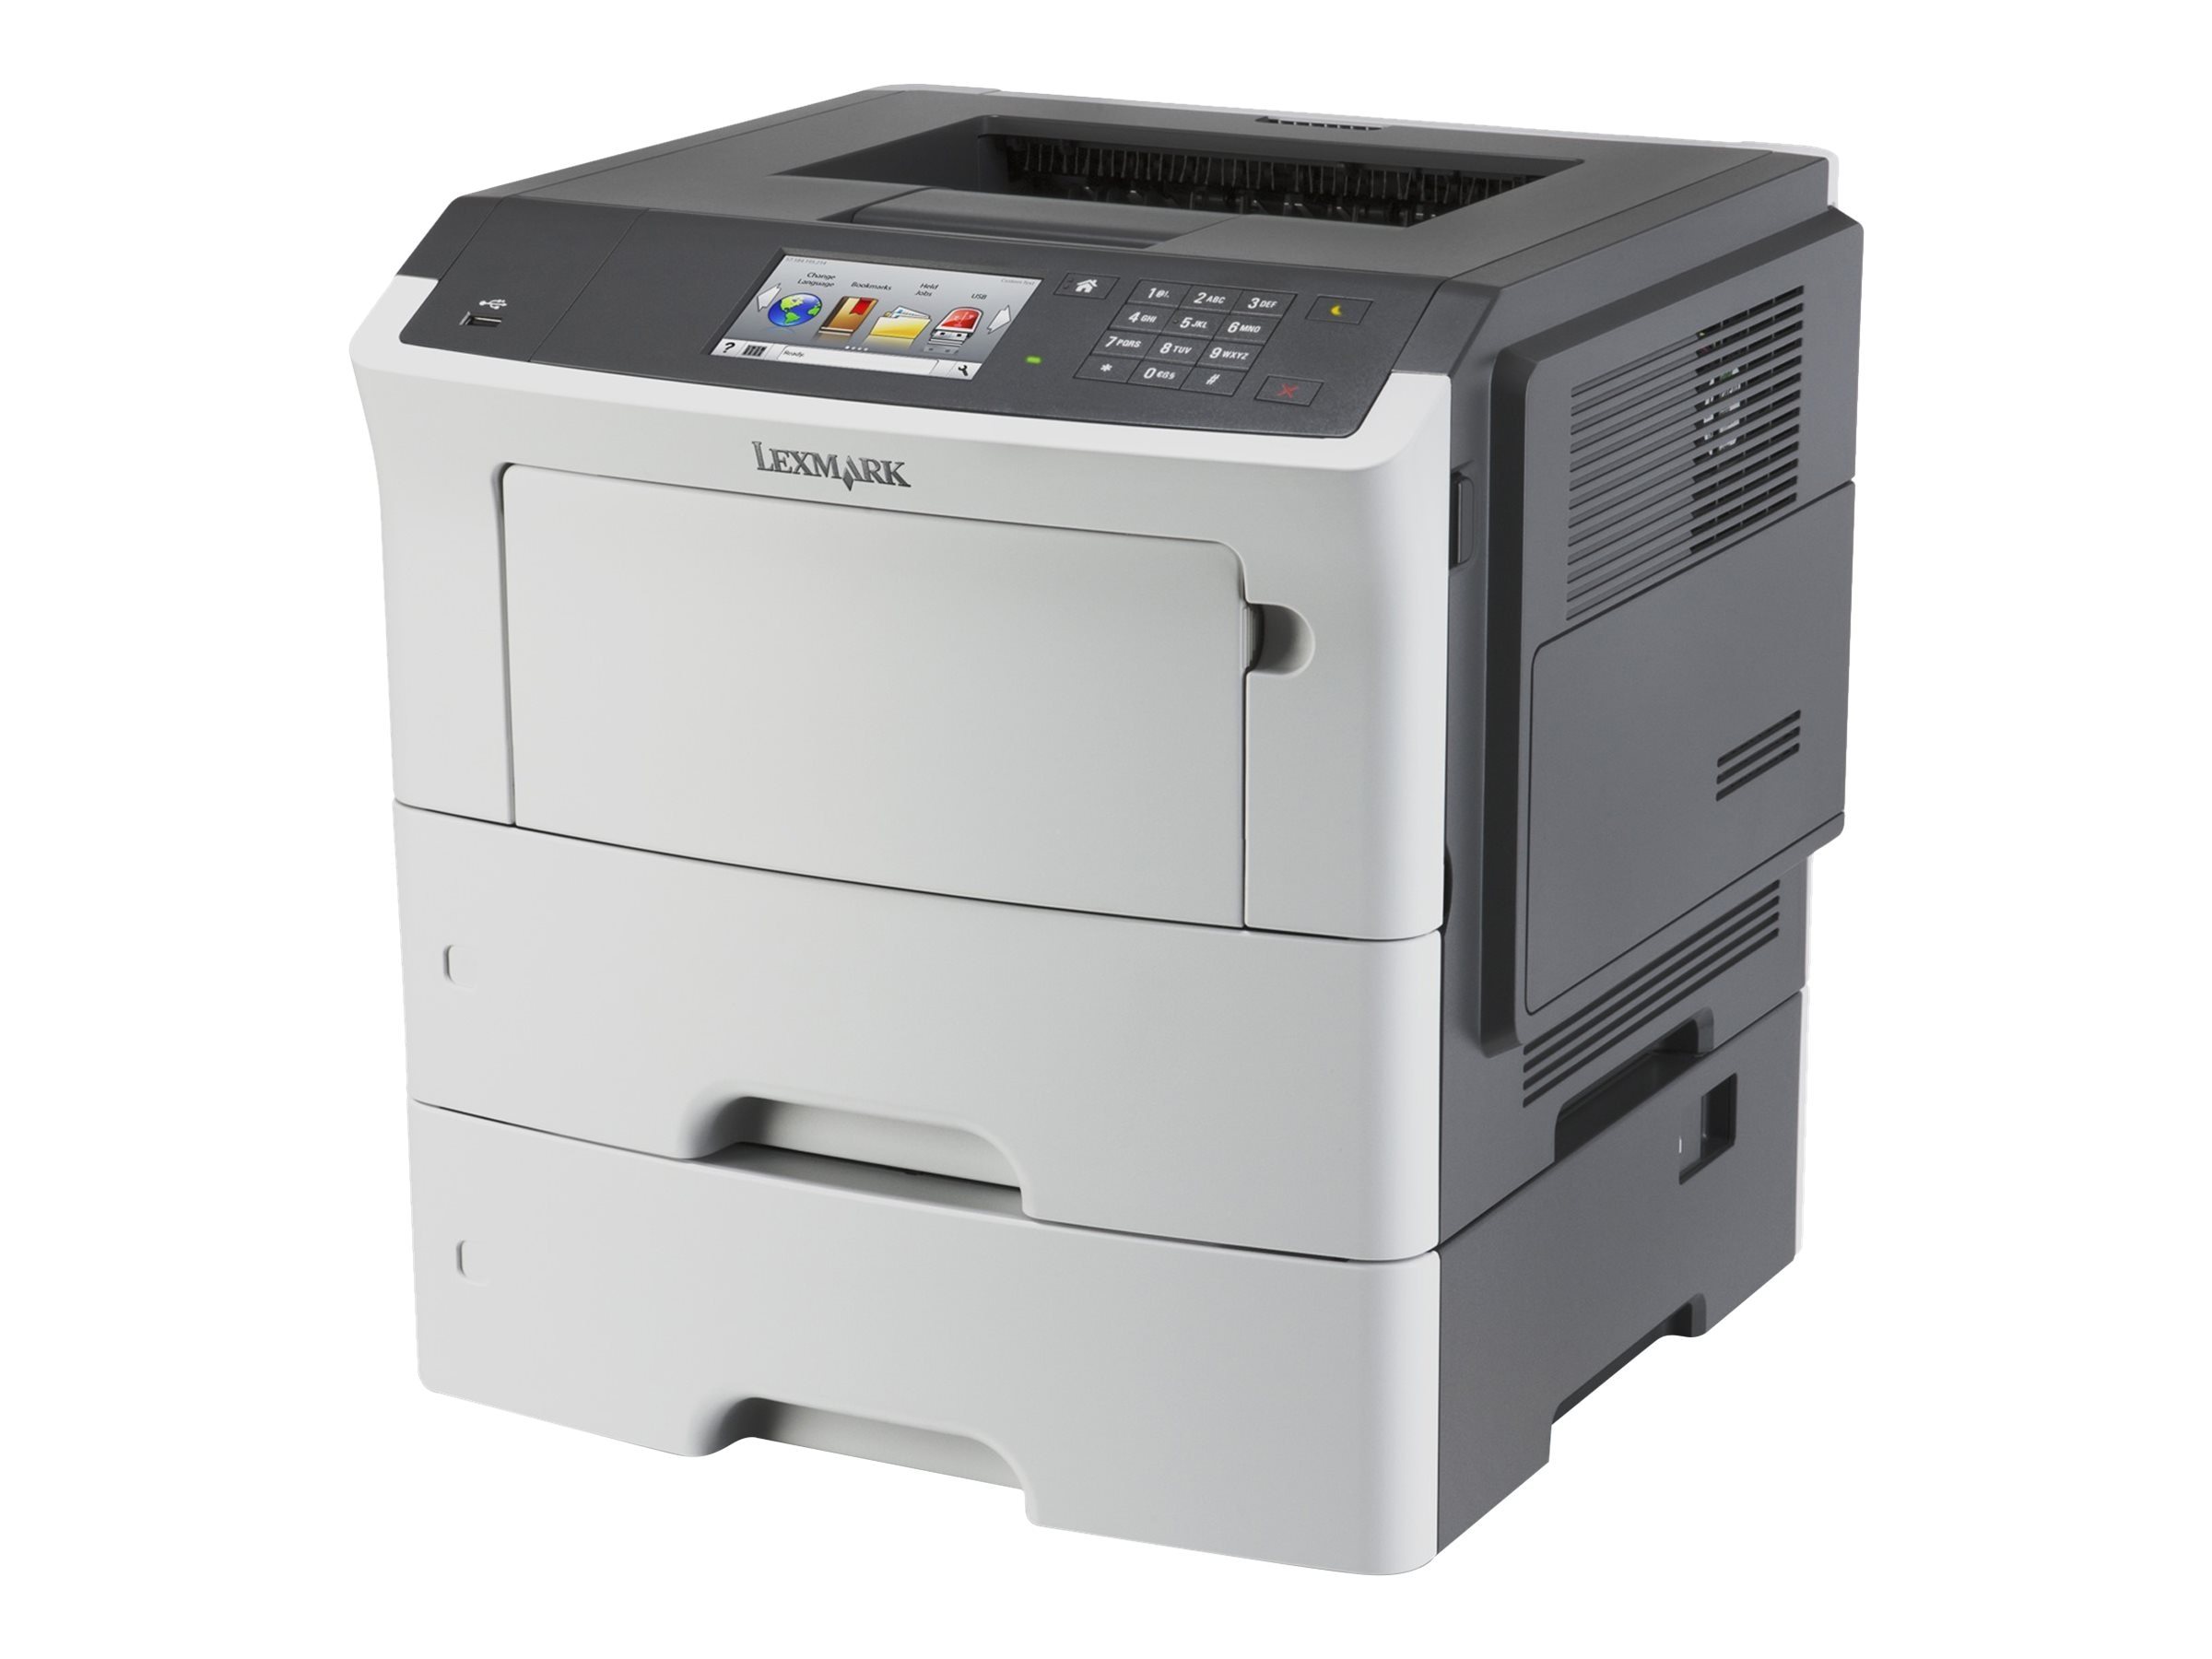 Lexmark MS610dte Monochrome Laser Printer - HV w  CAC Enablement (TAA Compliant)